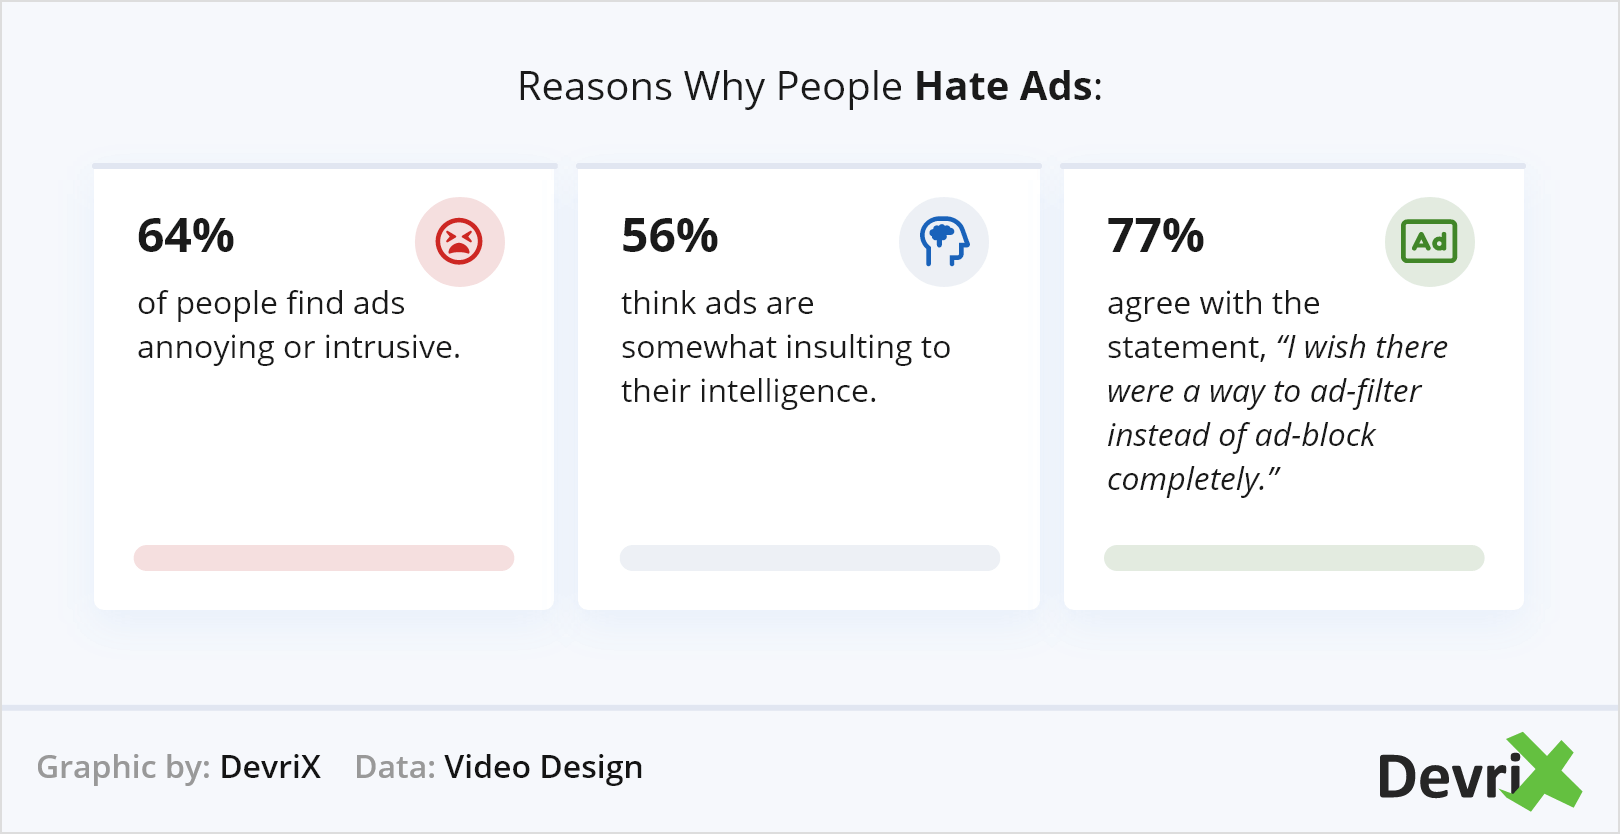 Reasons Why People Hate Ads